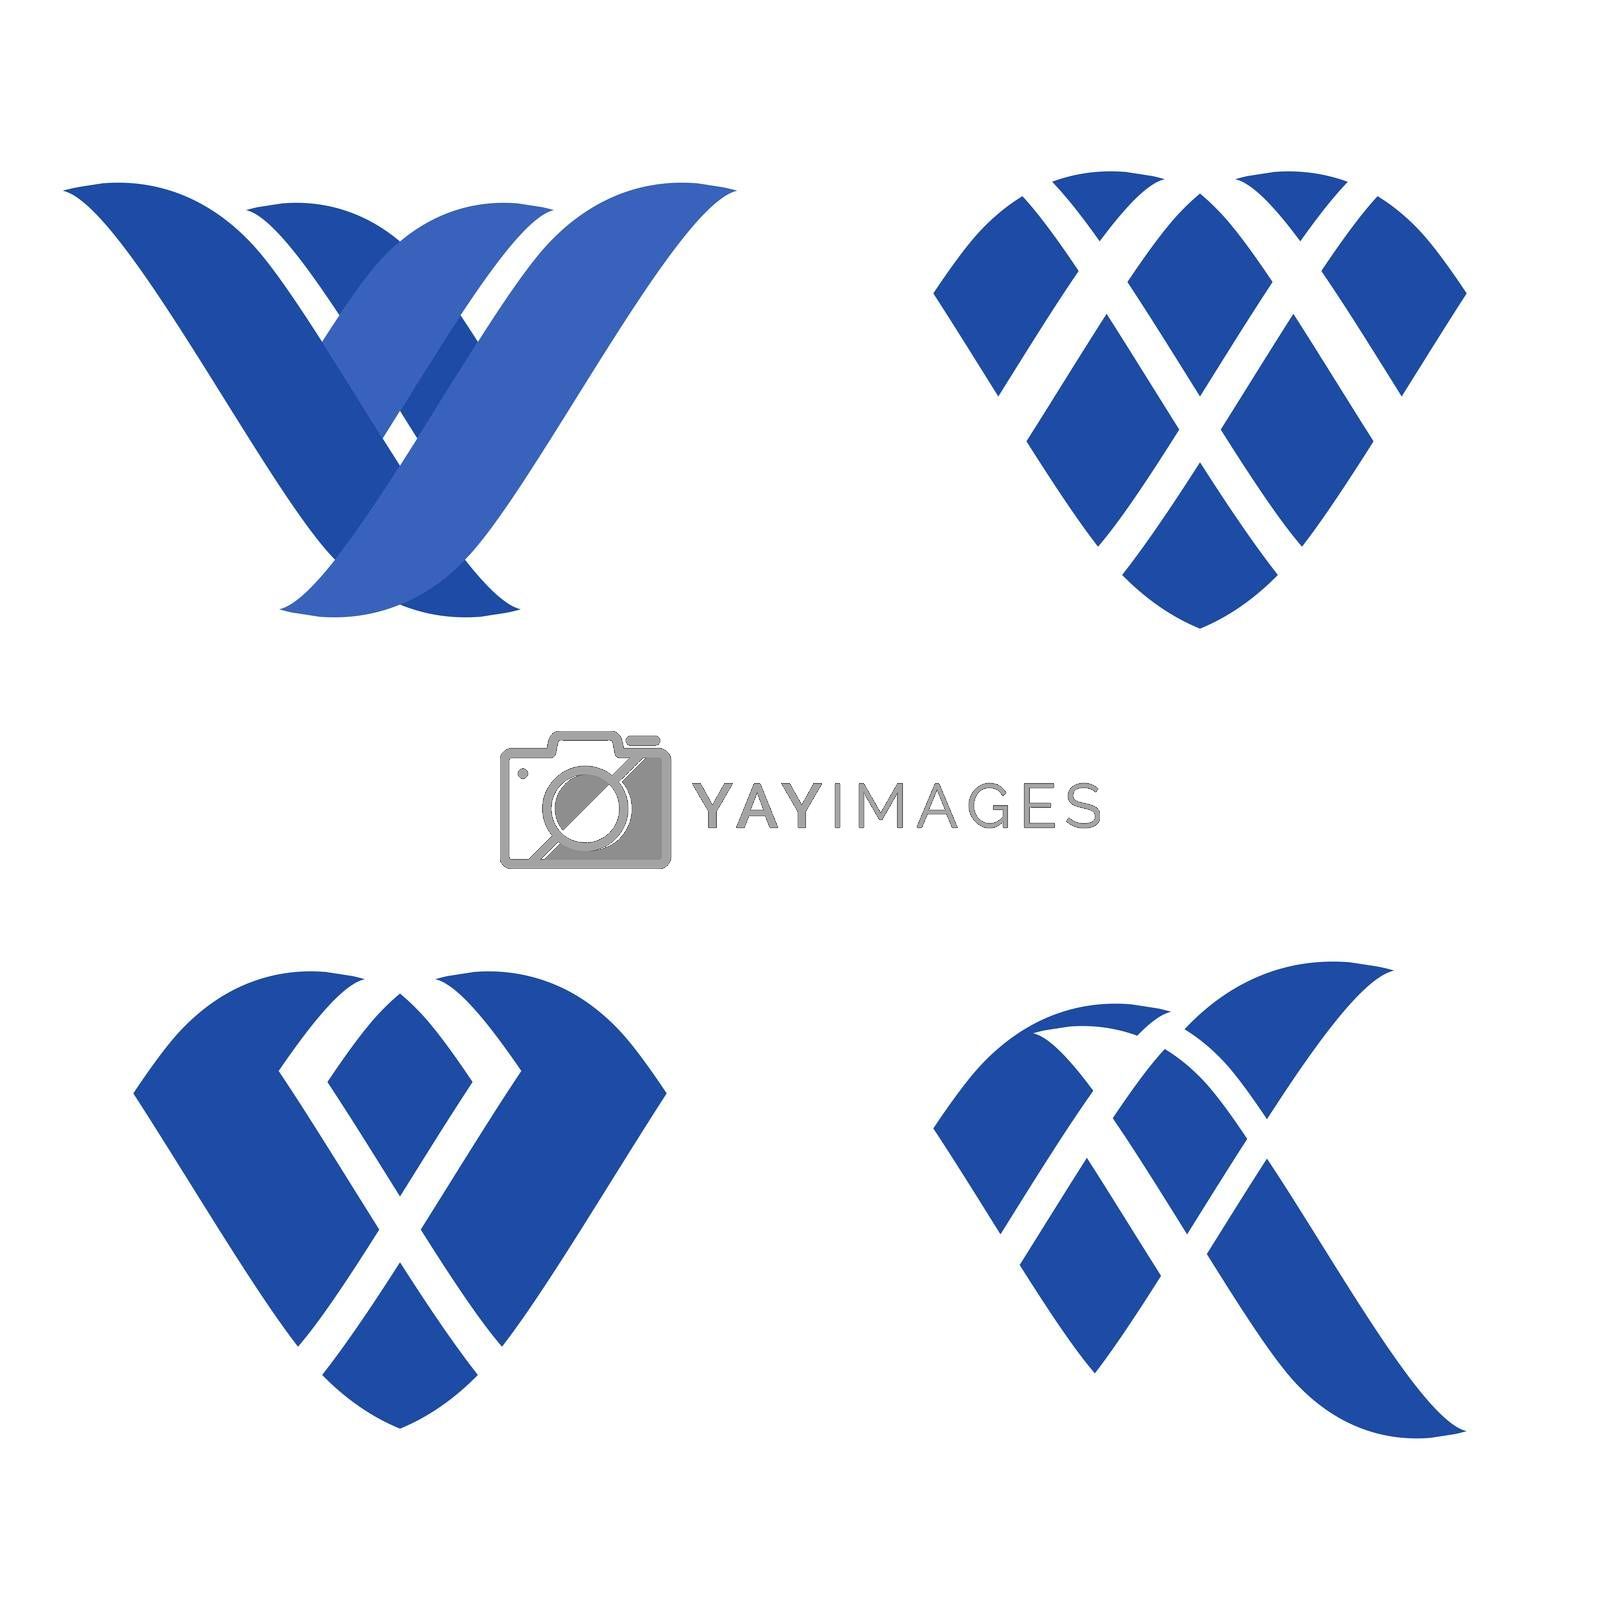 Abstract blue flat geometric logo template set